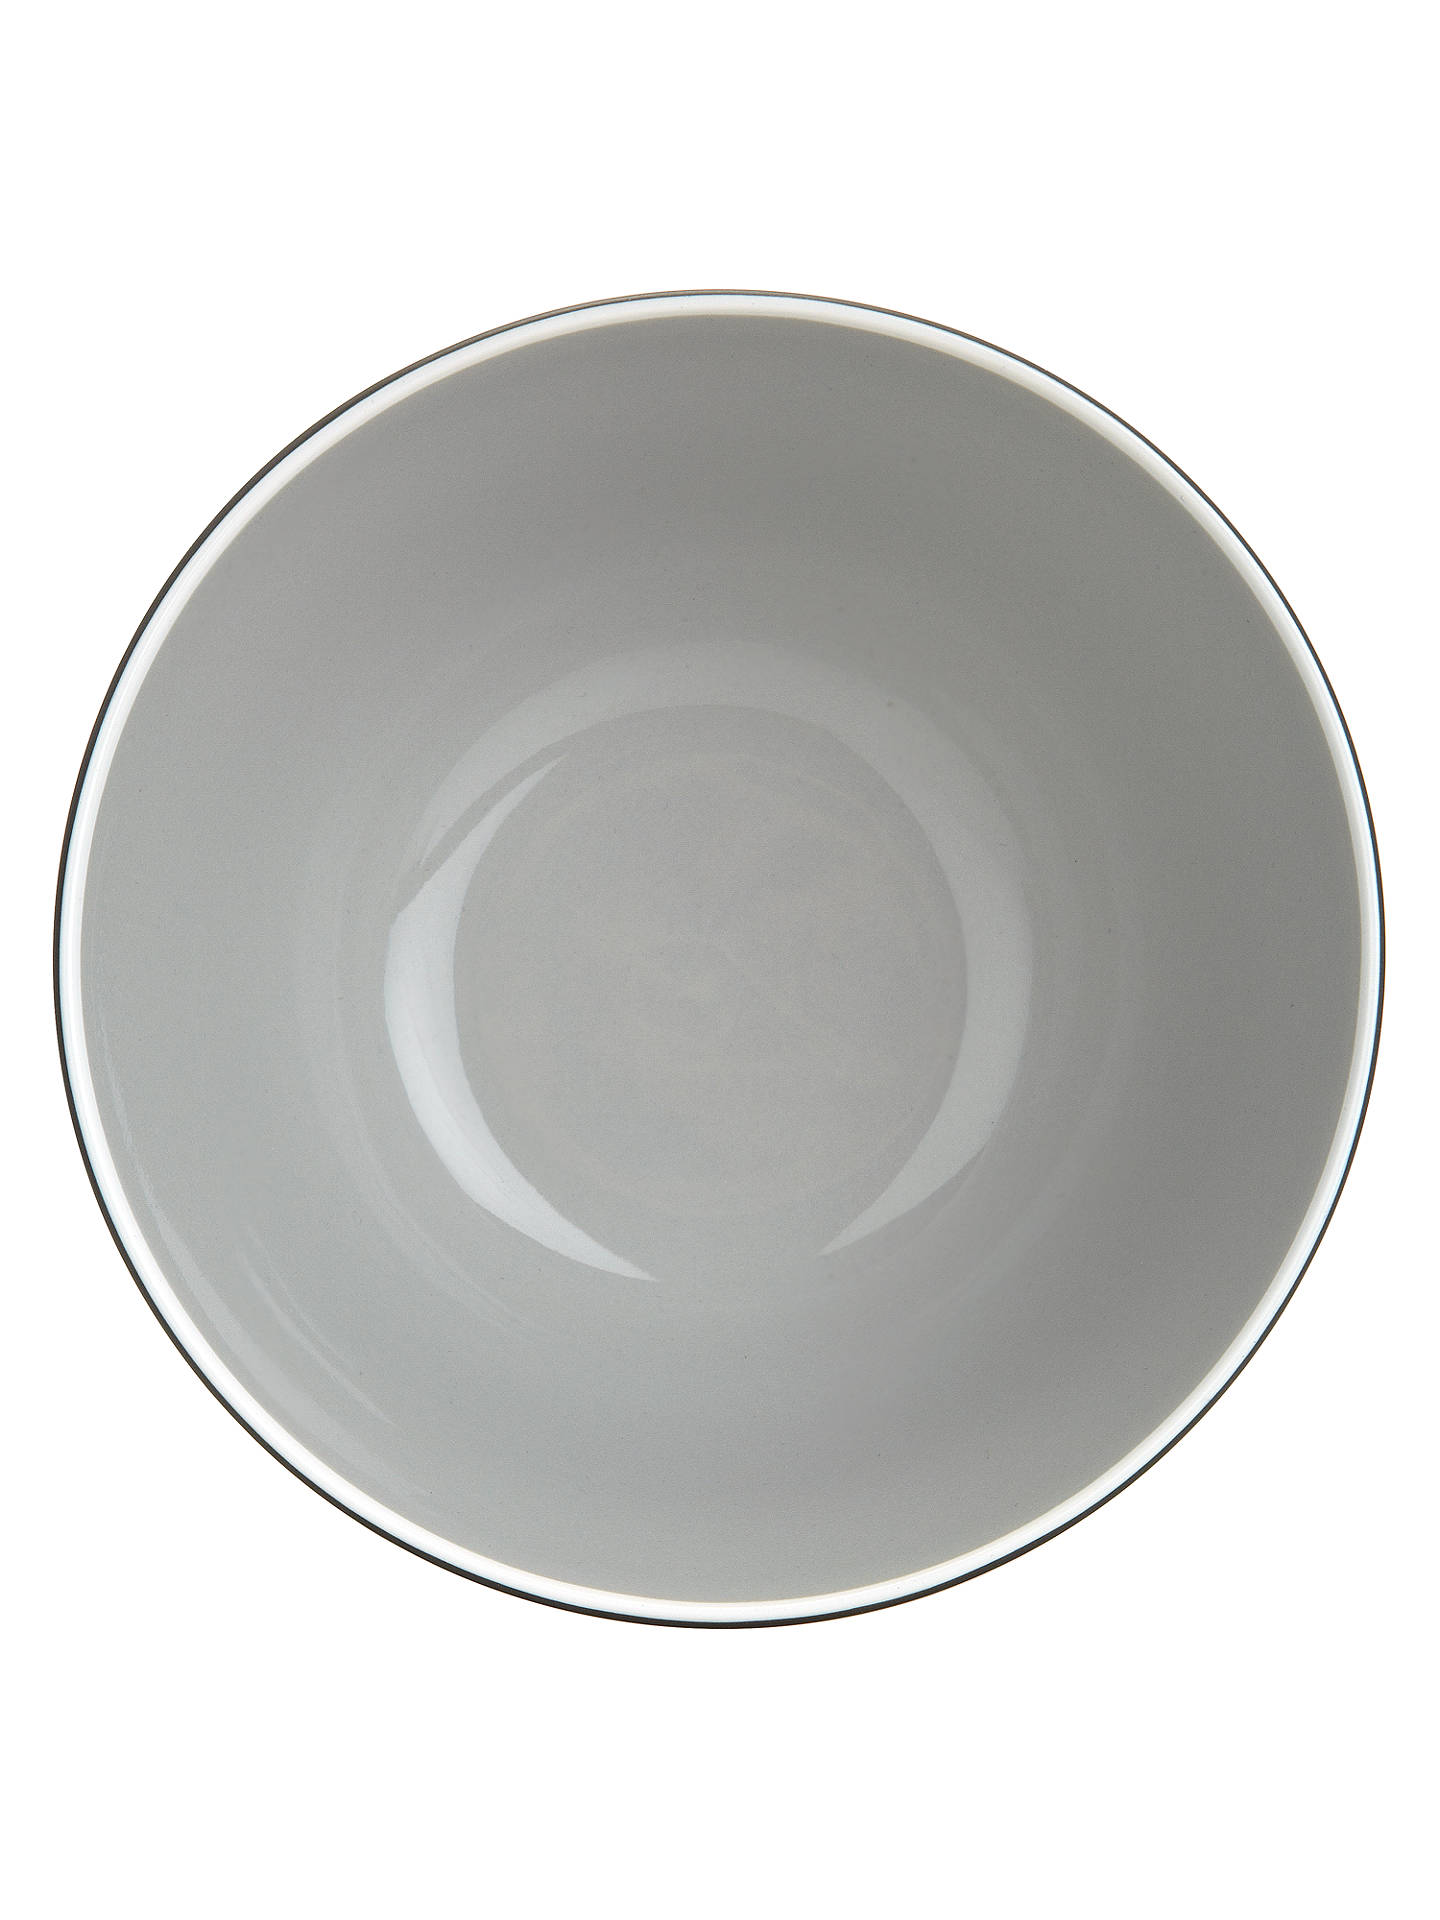 BuyJohn Lewis & Partners Puritan Cereal Bowl, Grey, Dia.15.5cm Online at johnlewis.com